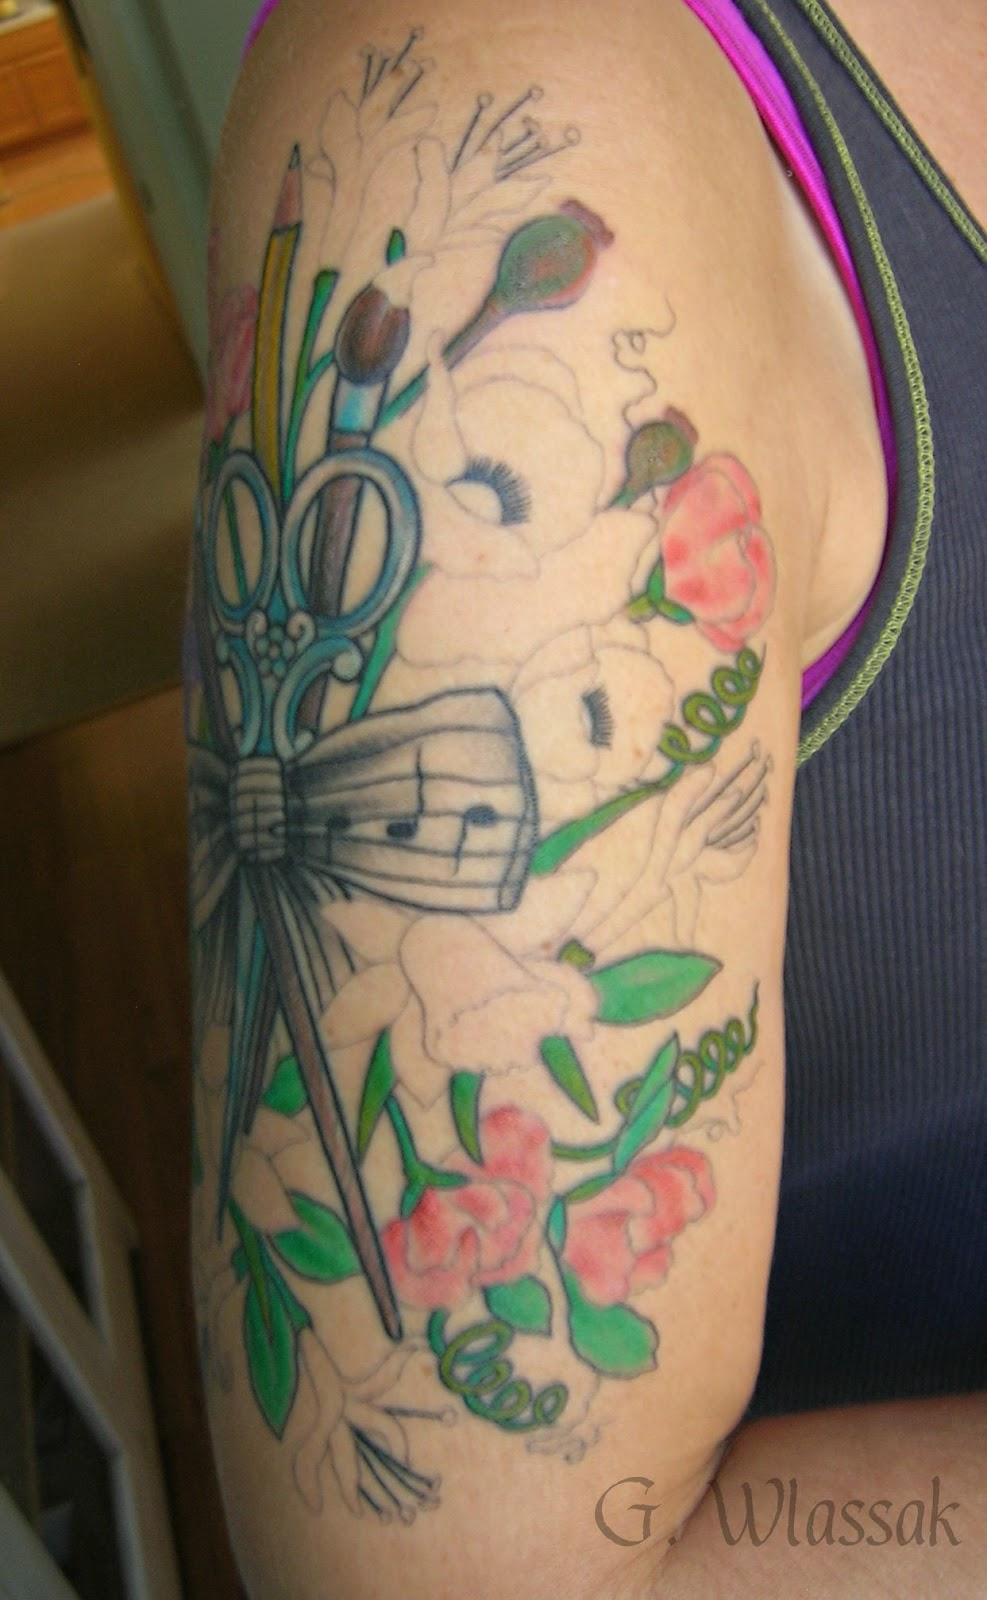 Hummingbird And Honeysuckle Tattoo Honeysuckle tattoo and heres the front side